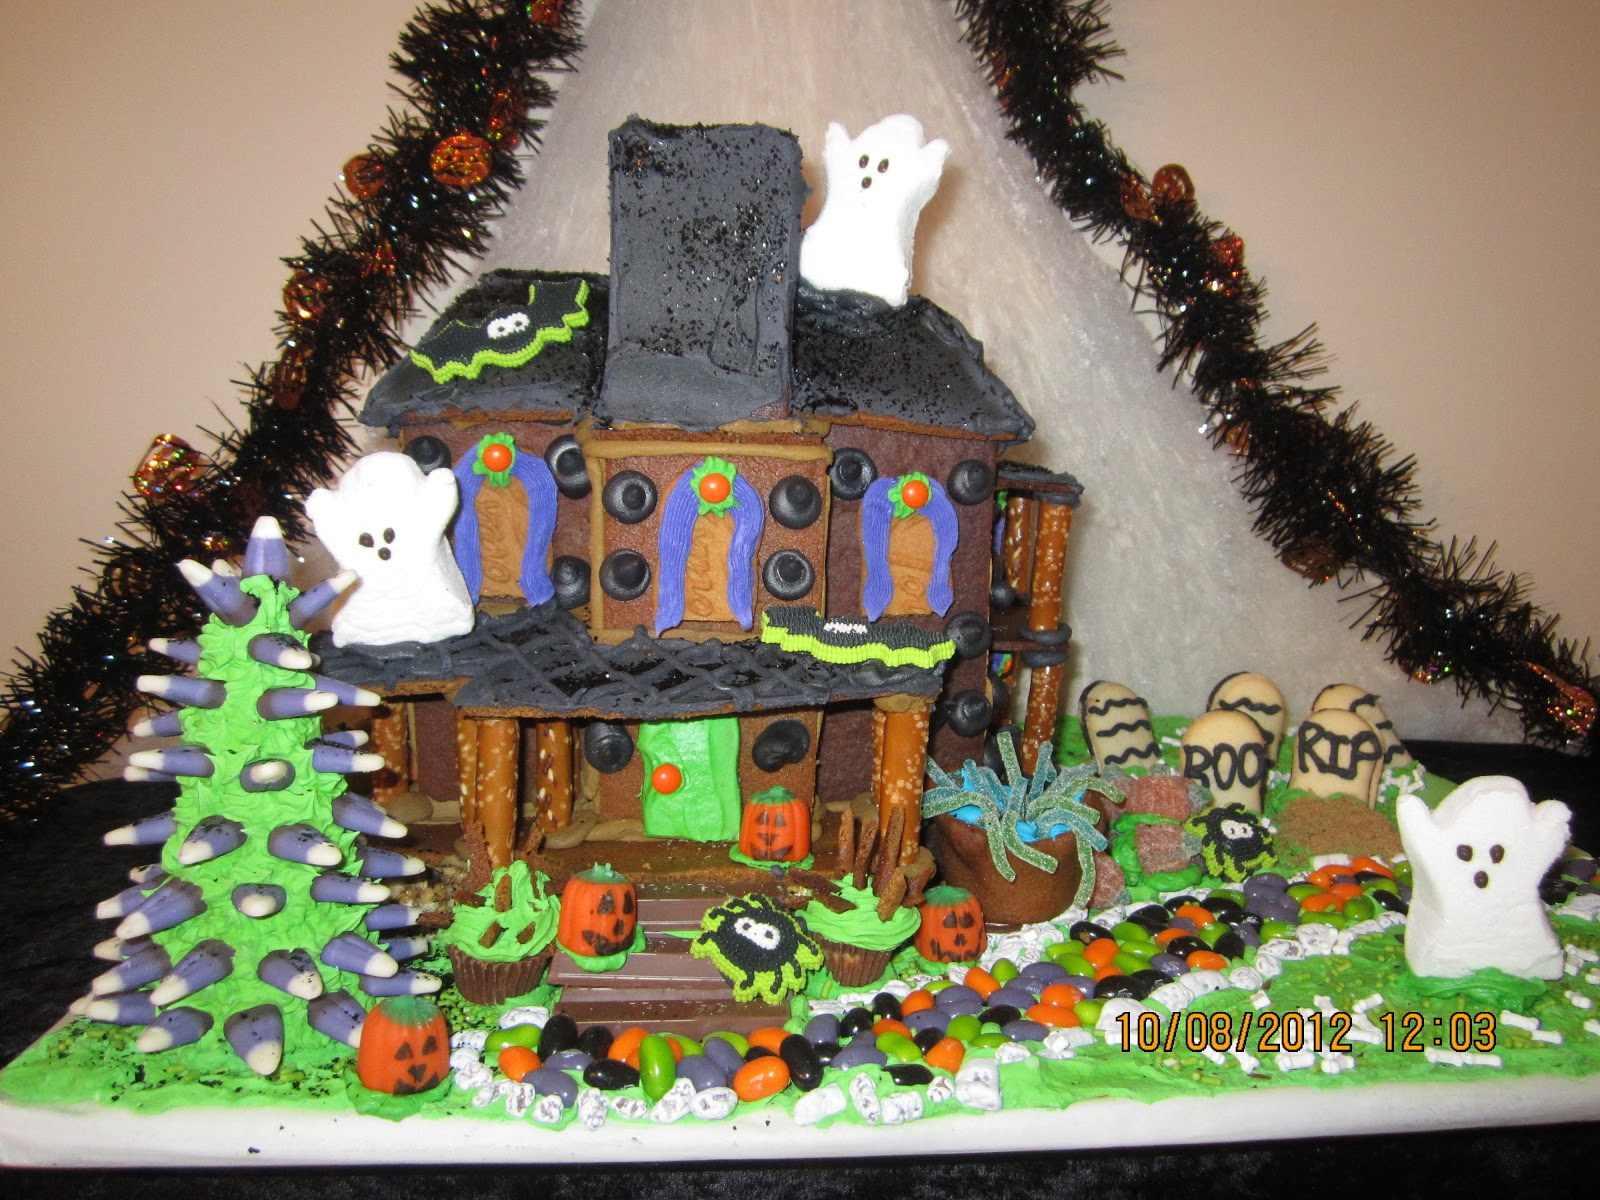 Gingerbread Haunted House Design Html on haunted house moon, simple spooky house, inflatable haunted house, the scariest most haunted house, haunted irish houses, haunted houses in alabama, haunted houses in texas, haunted turkey house, the scarehouse haunted house, haunted gingerbread tree, fun spot orlando haunted house, ghostly manor haunted house, haunted house blank template, haunted winter house, animated haunted house, haunted victorian houses, raymond hill mortuary haunted house, cartoon haunted house, haunted cookie house, haunted family house,